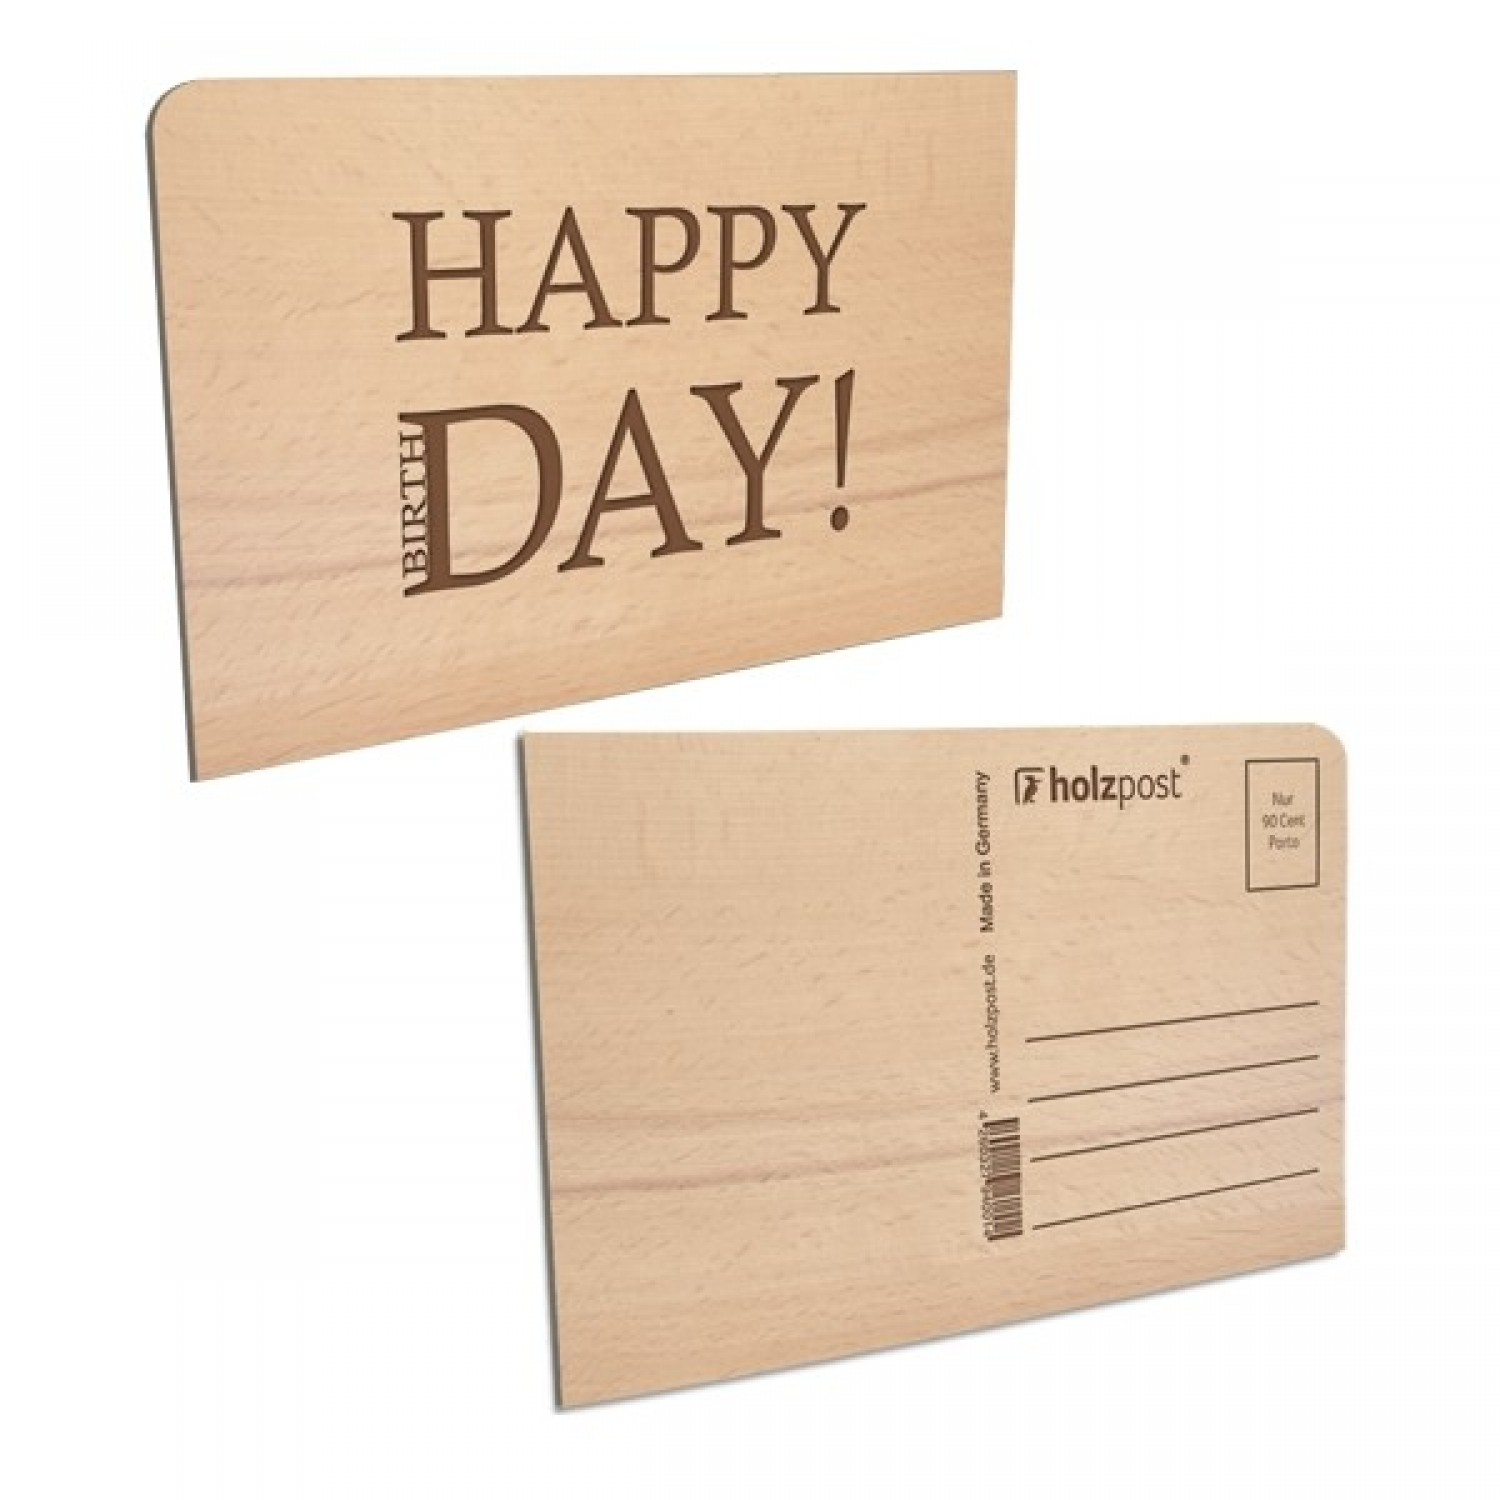 Postkarte aus Holz – HAPPY DAY